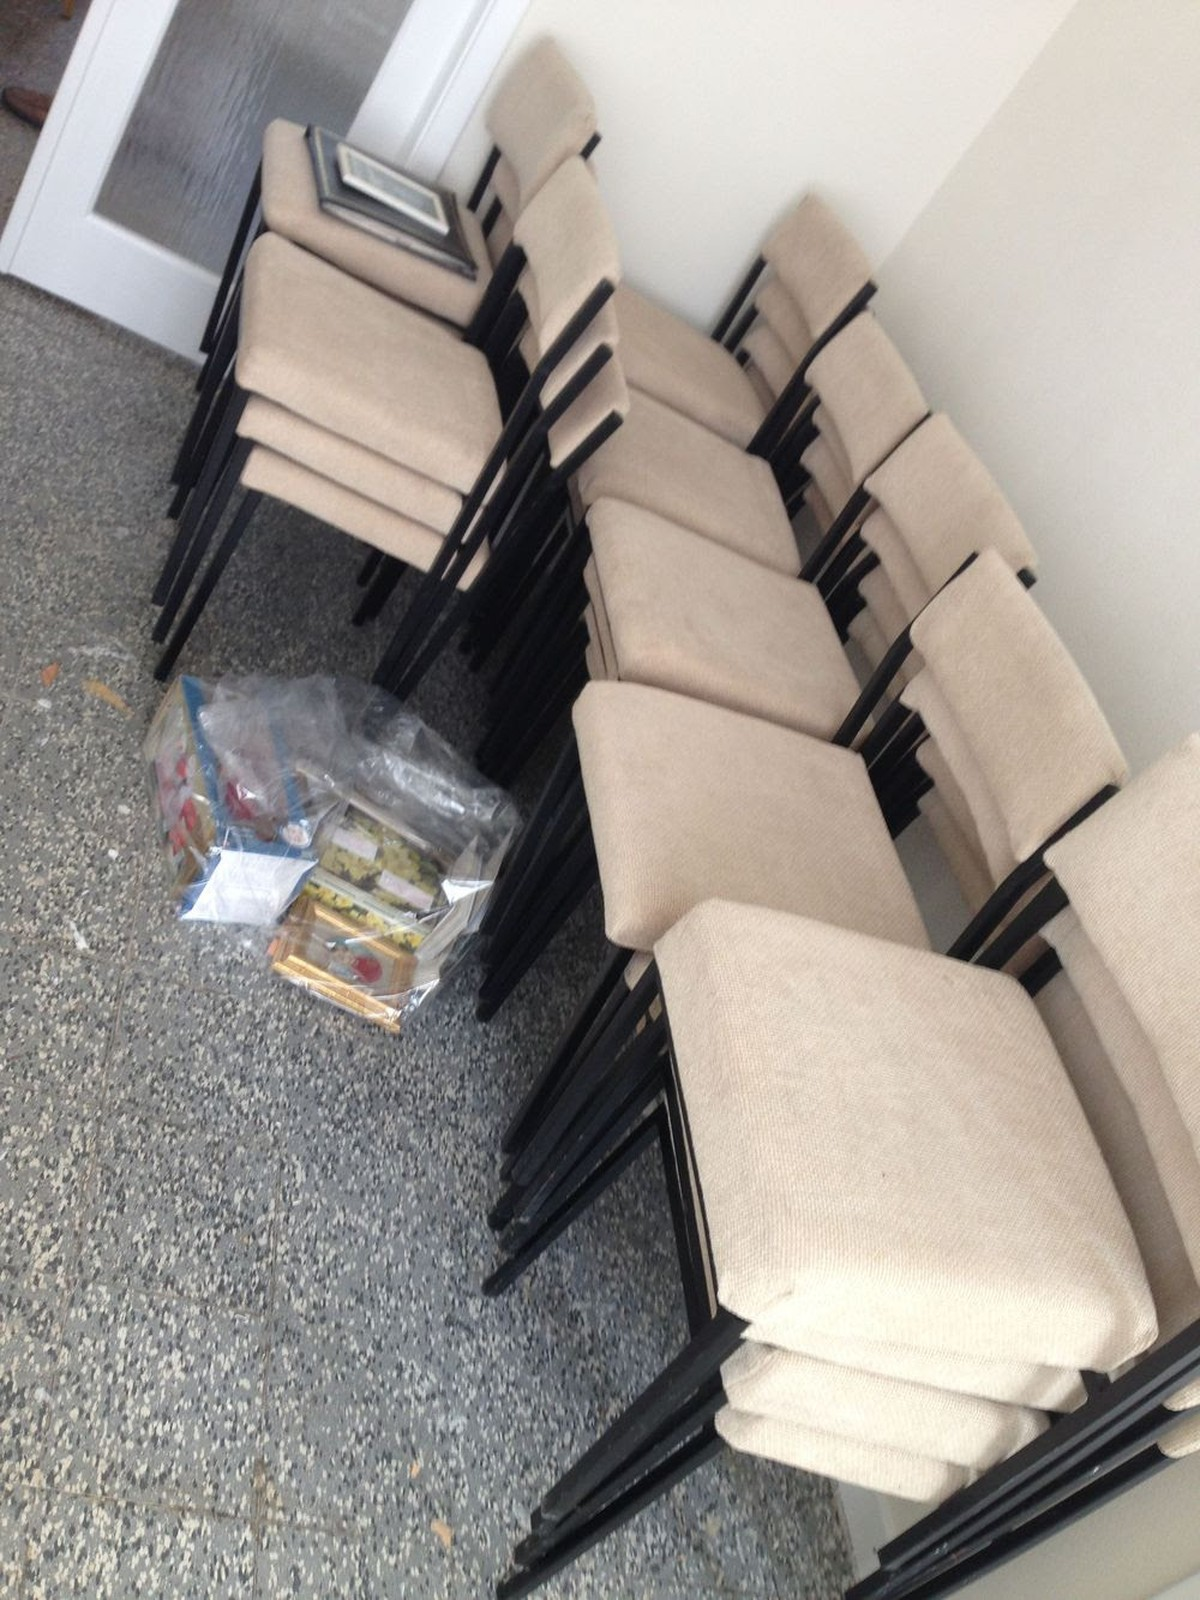 Secondhand Chairs And Tables Office Furniture Office